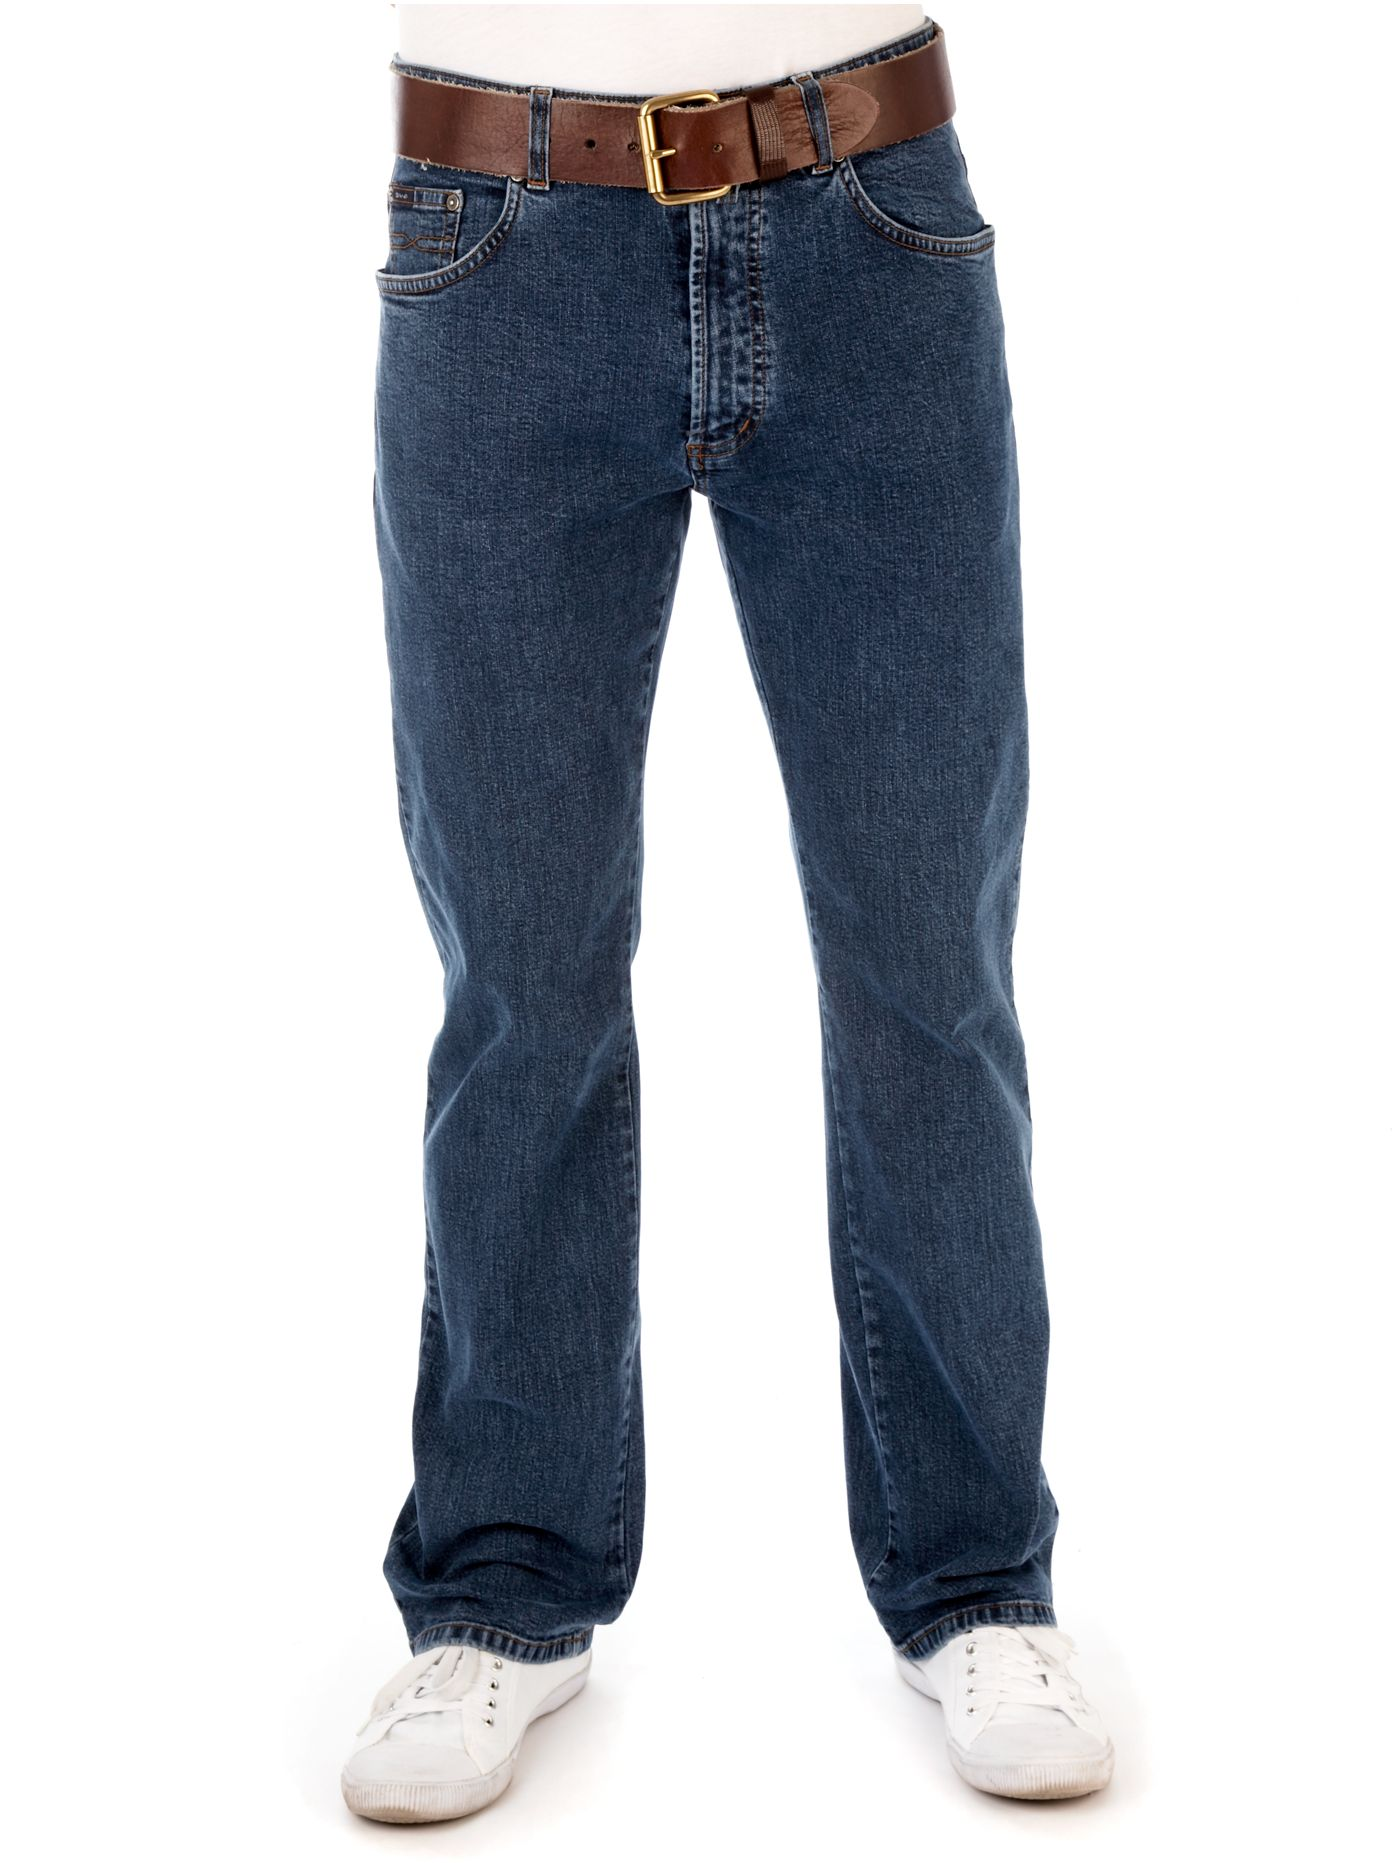 Comfort stretch cotton jeans